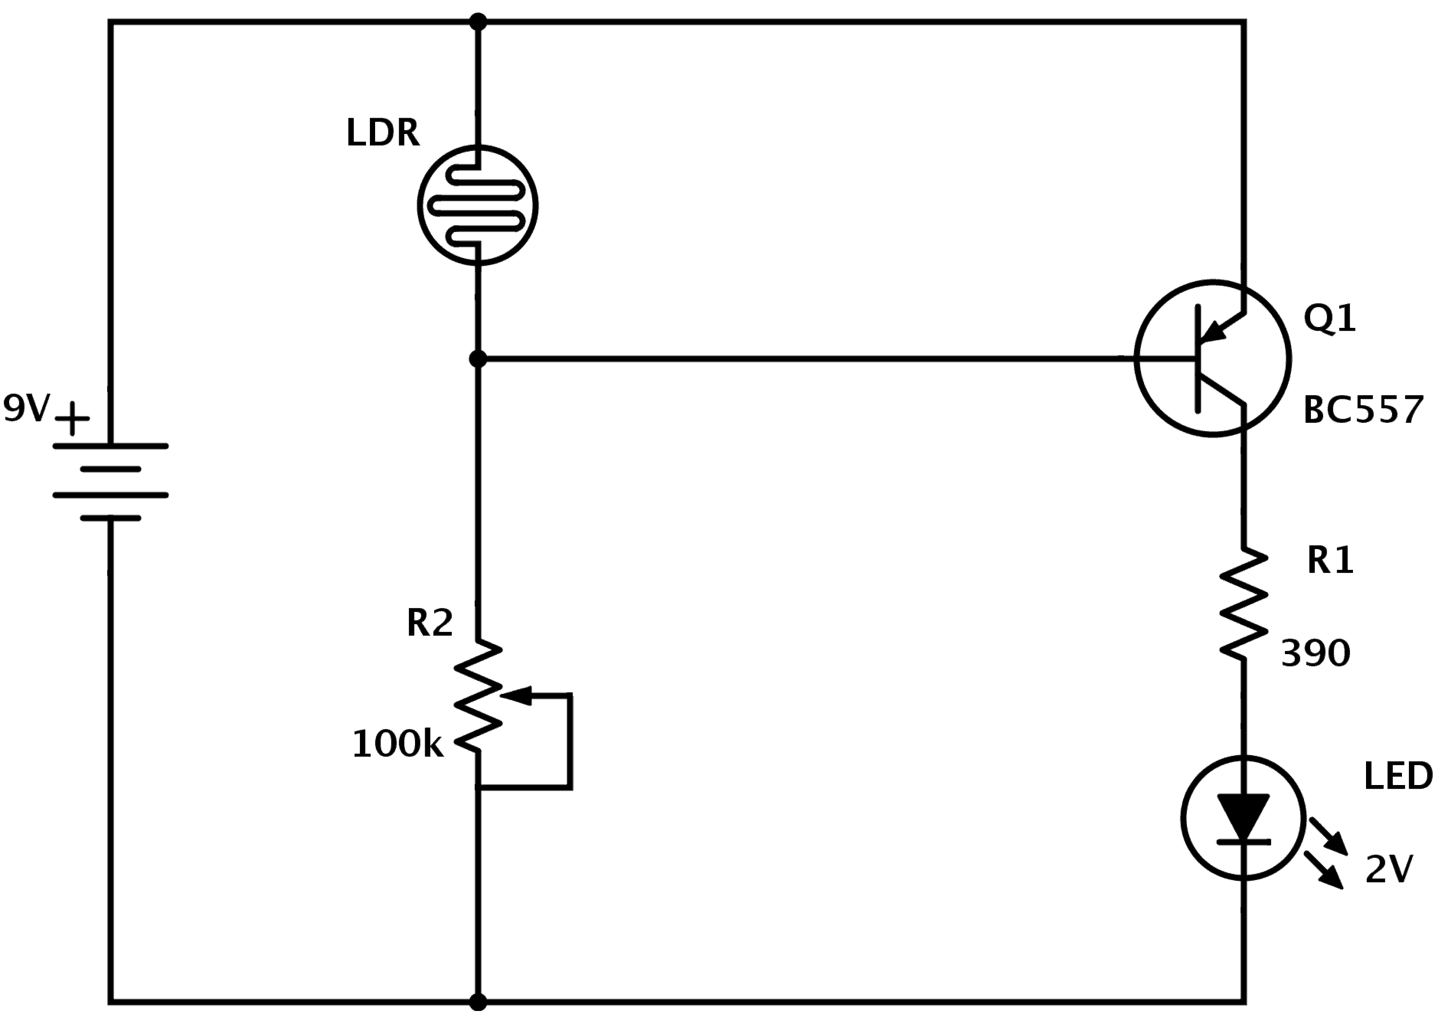 Ldr Circuit Diagram Build Electronic Circuits Ac 3 Wire Proximity Switch Wiring Free Download Diagrams With Pnp Transistor Dark Detector